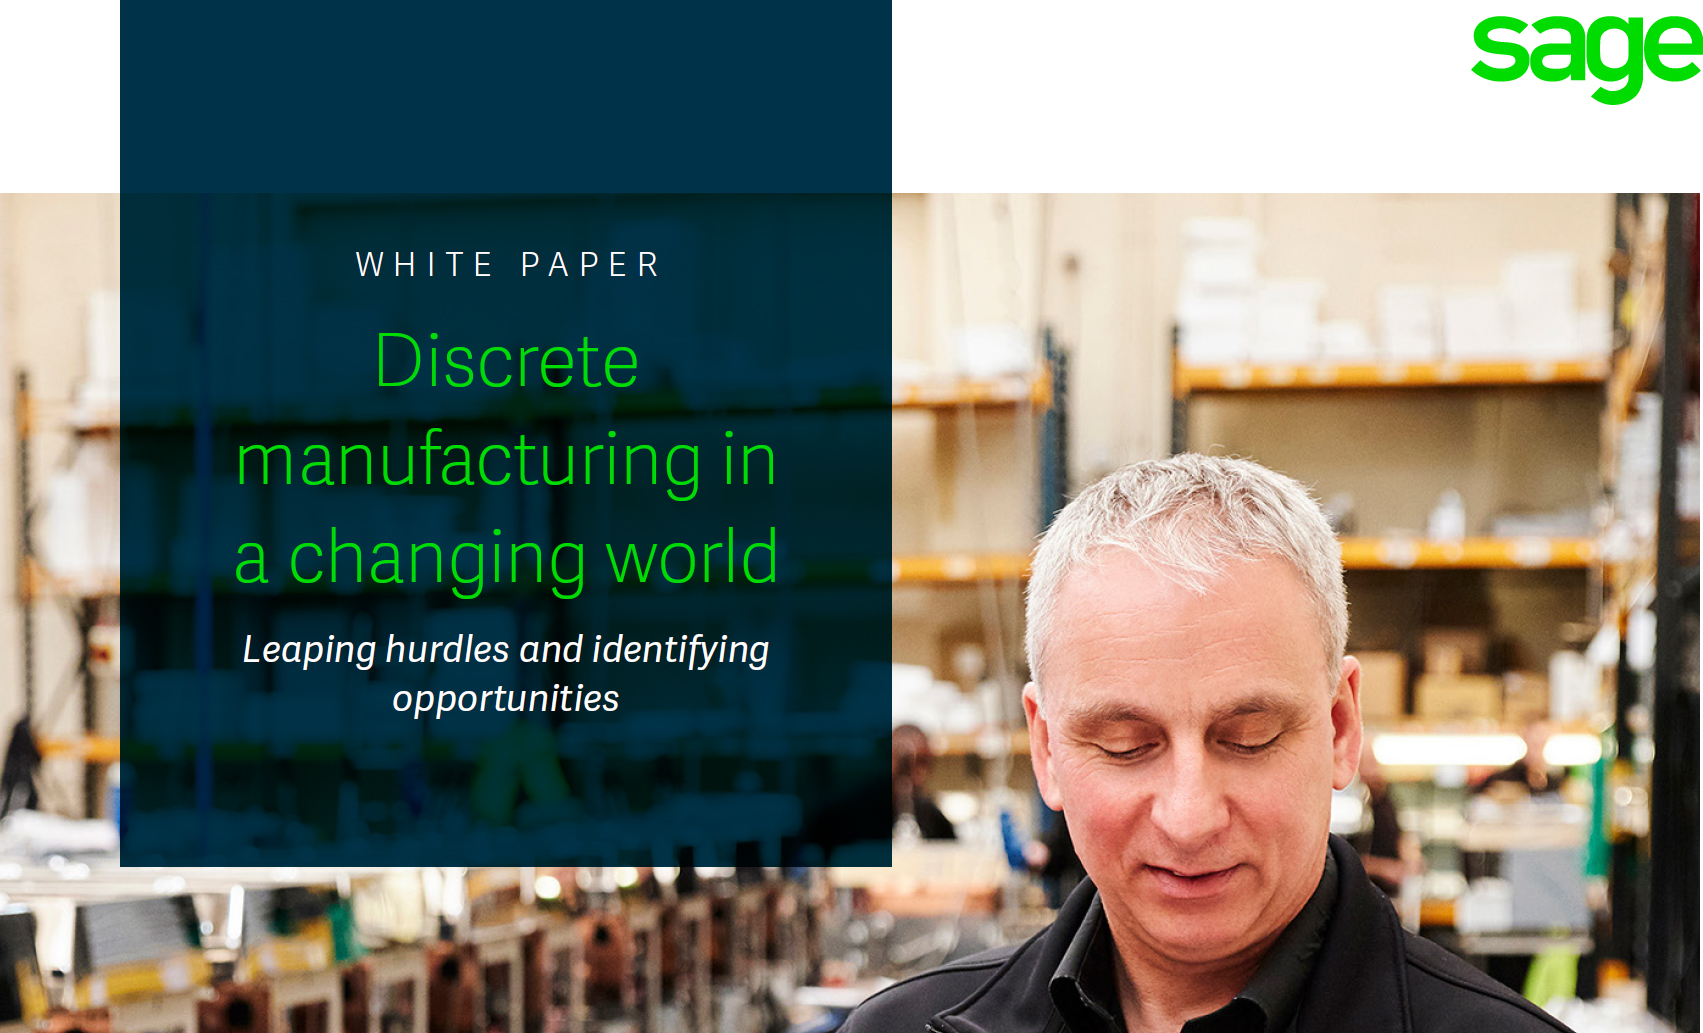 Discrete manufacturing in a changing world